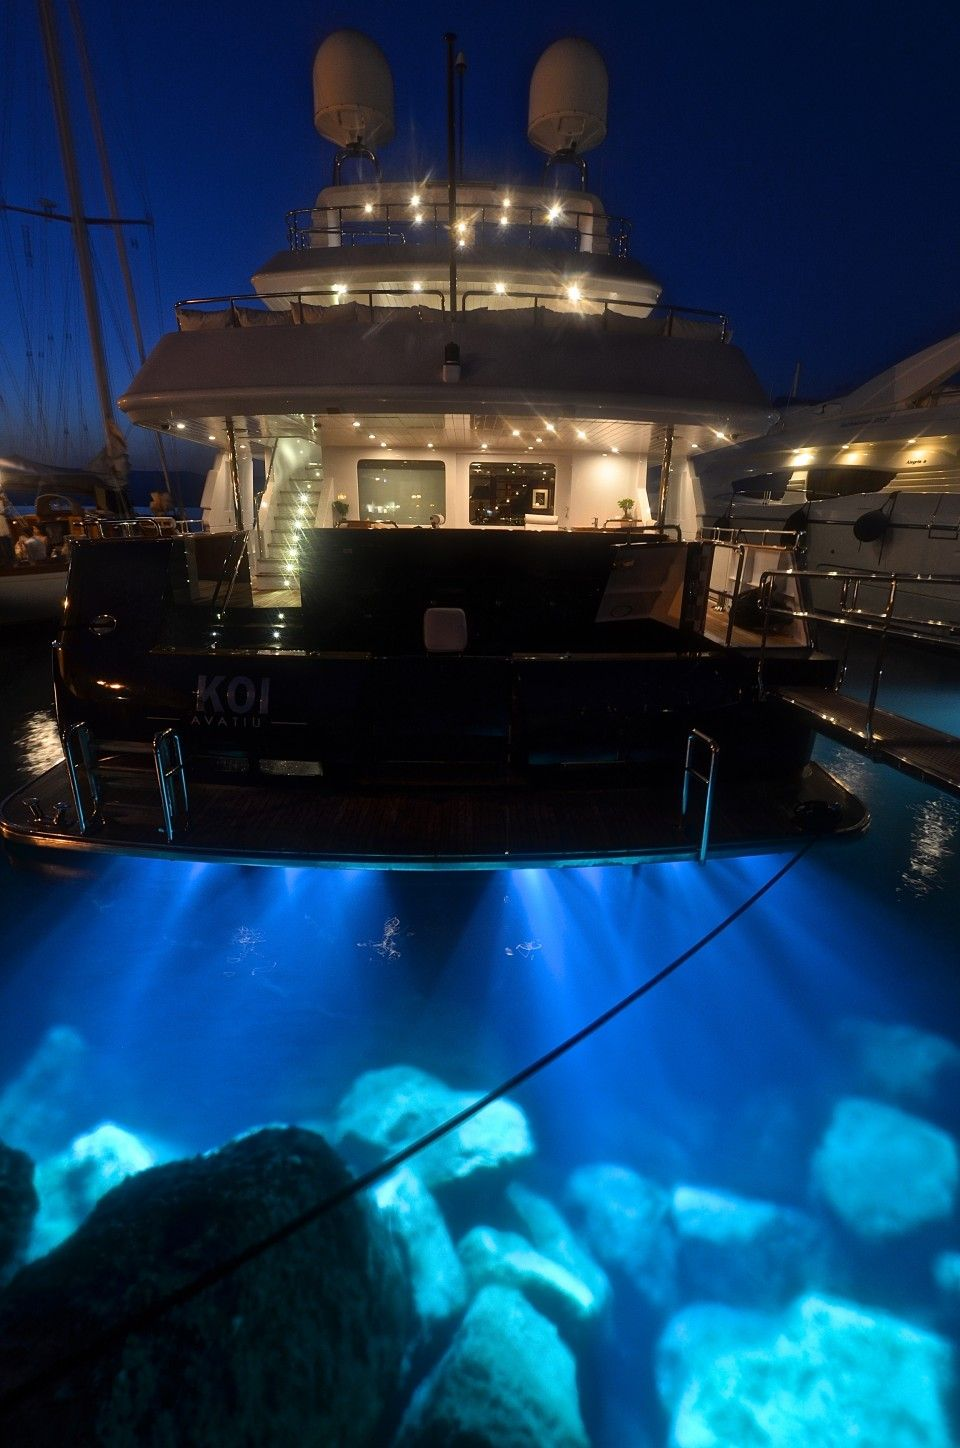 Luxury Yacht Engine Room: Koi - Yacht Charter - Mcmullen & Wing